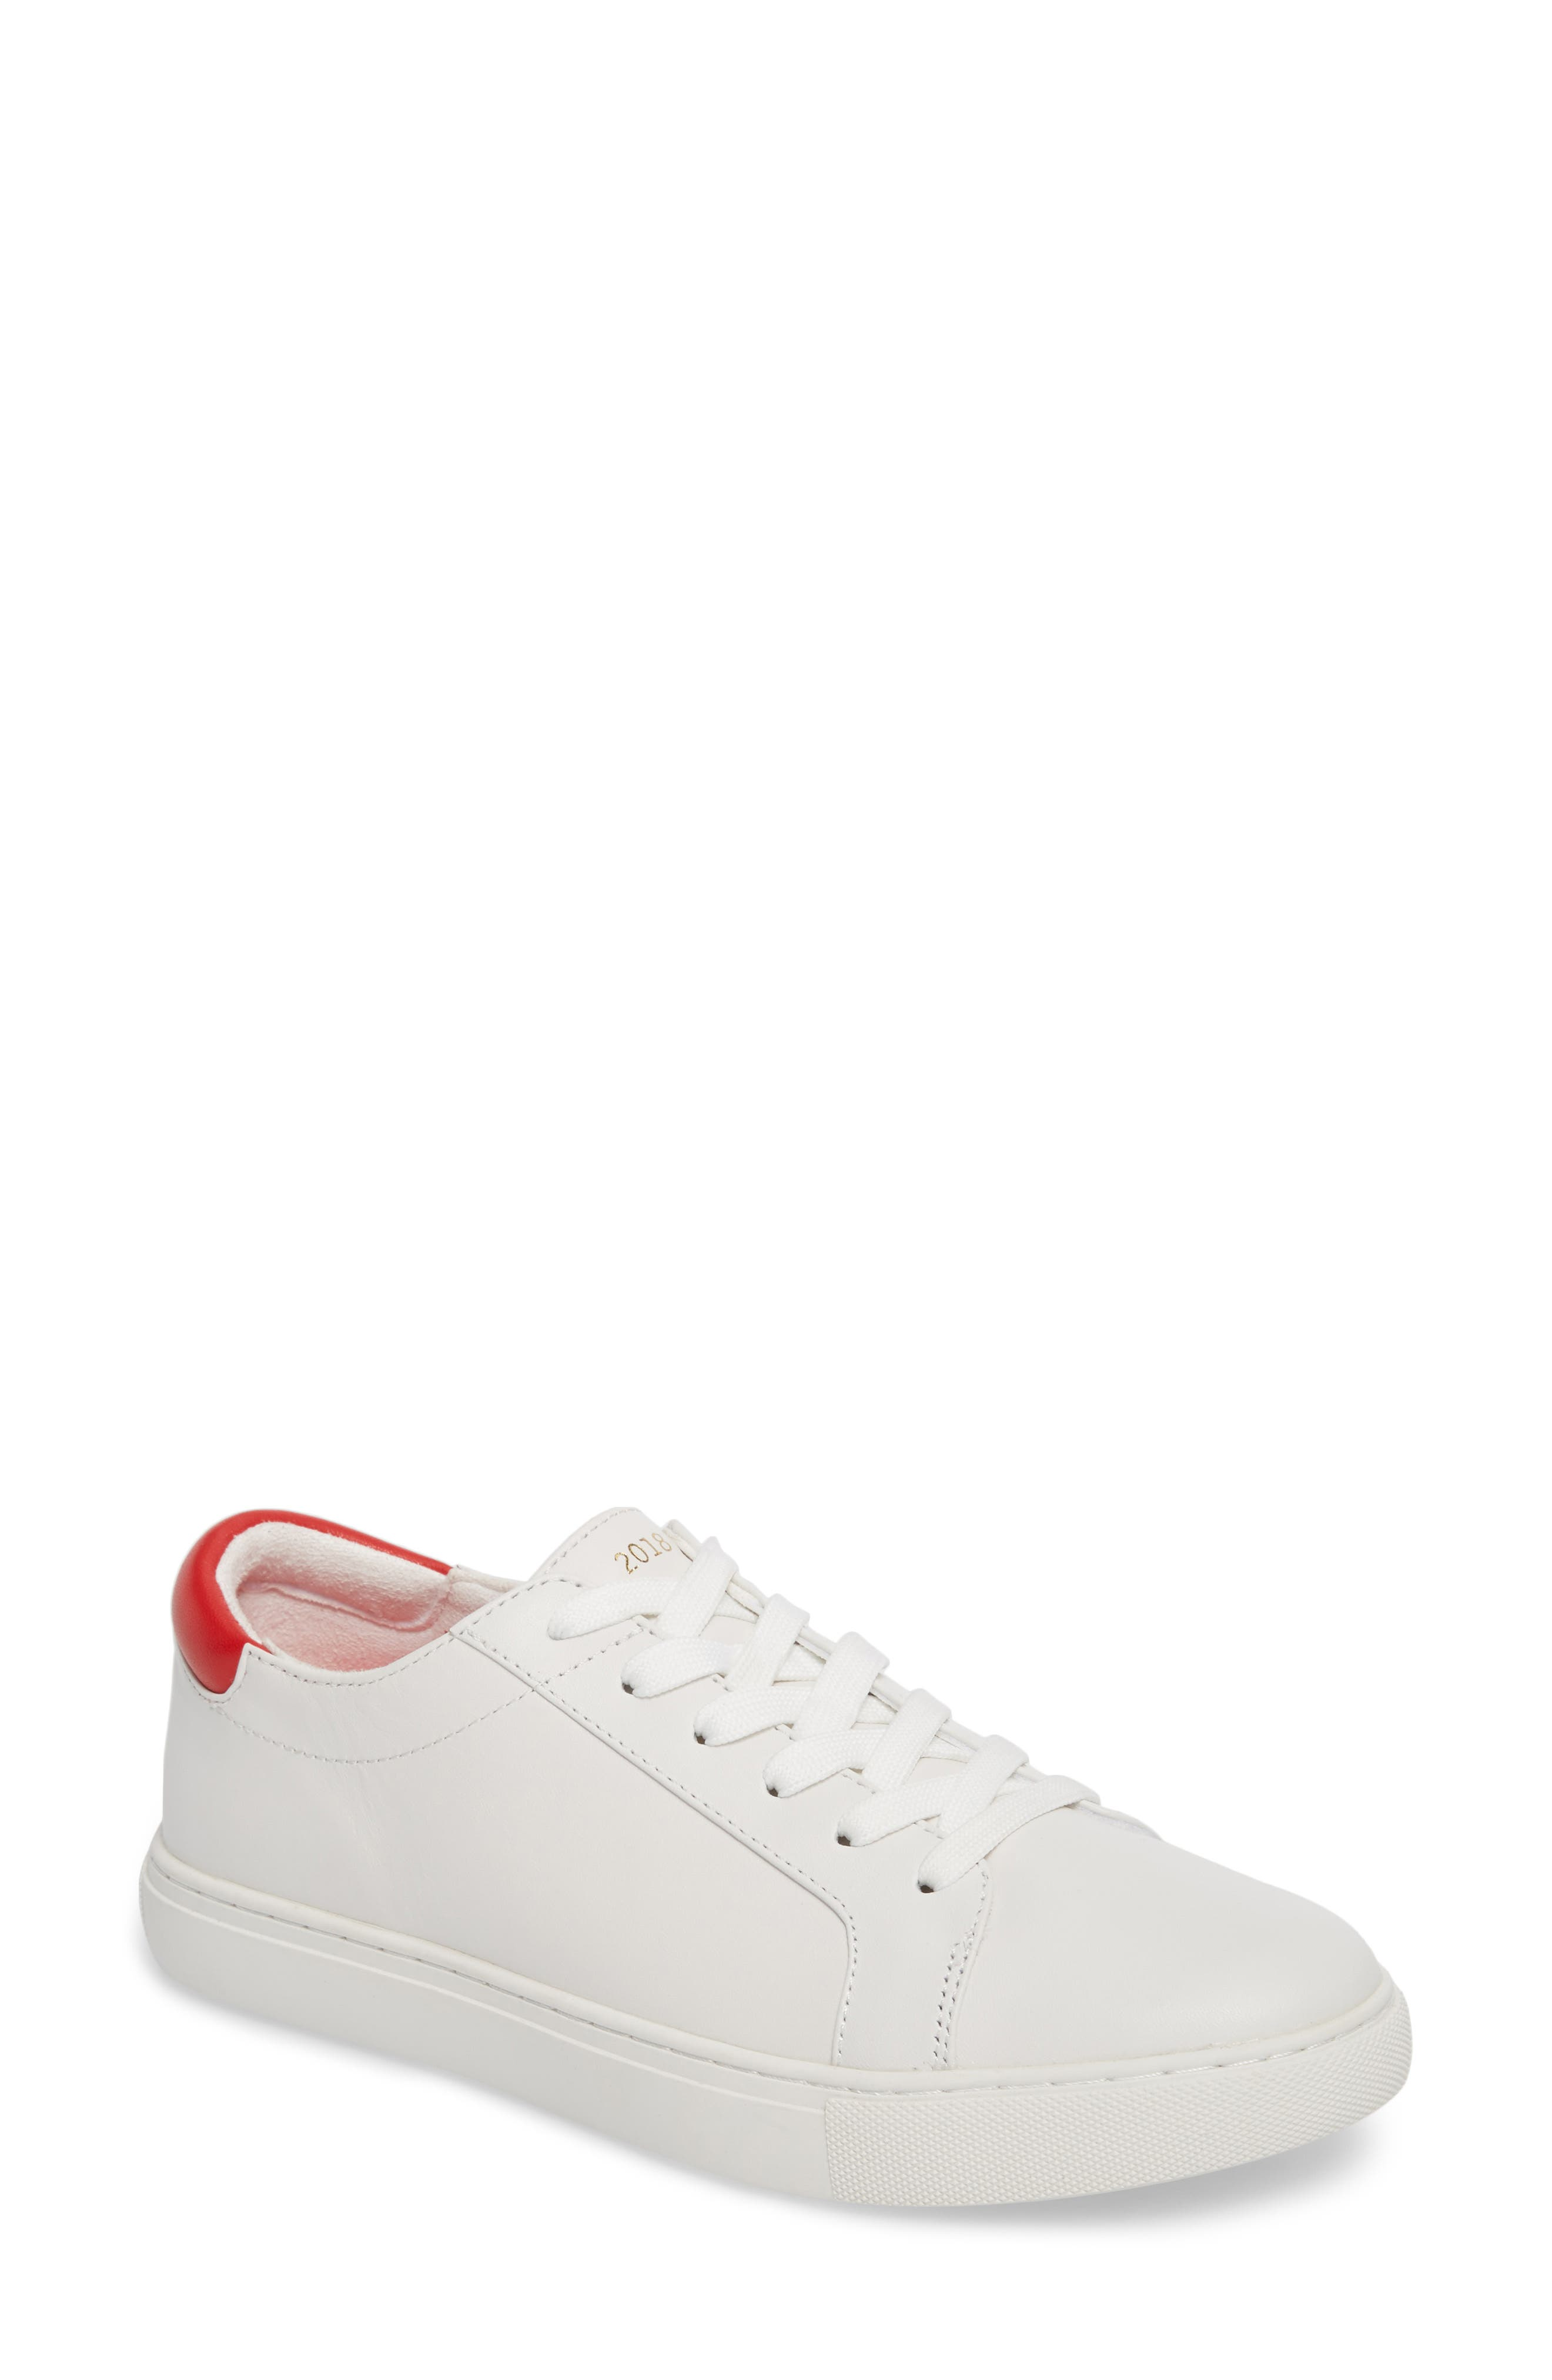 Cam Low Top Sneaker,                             Main thumbnail 1, color,                             White Leather